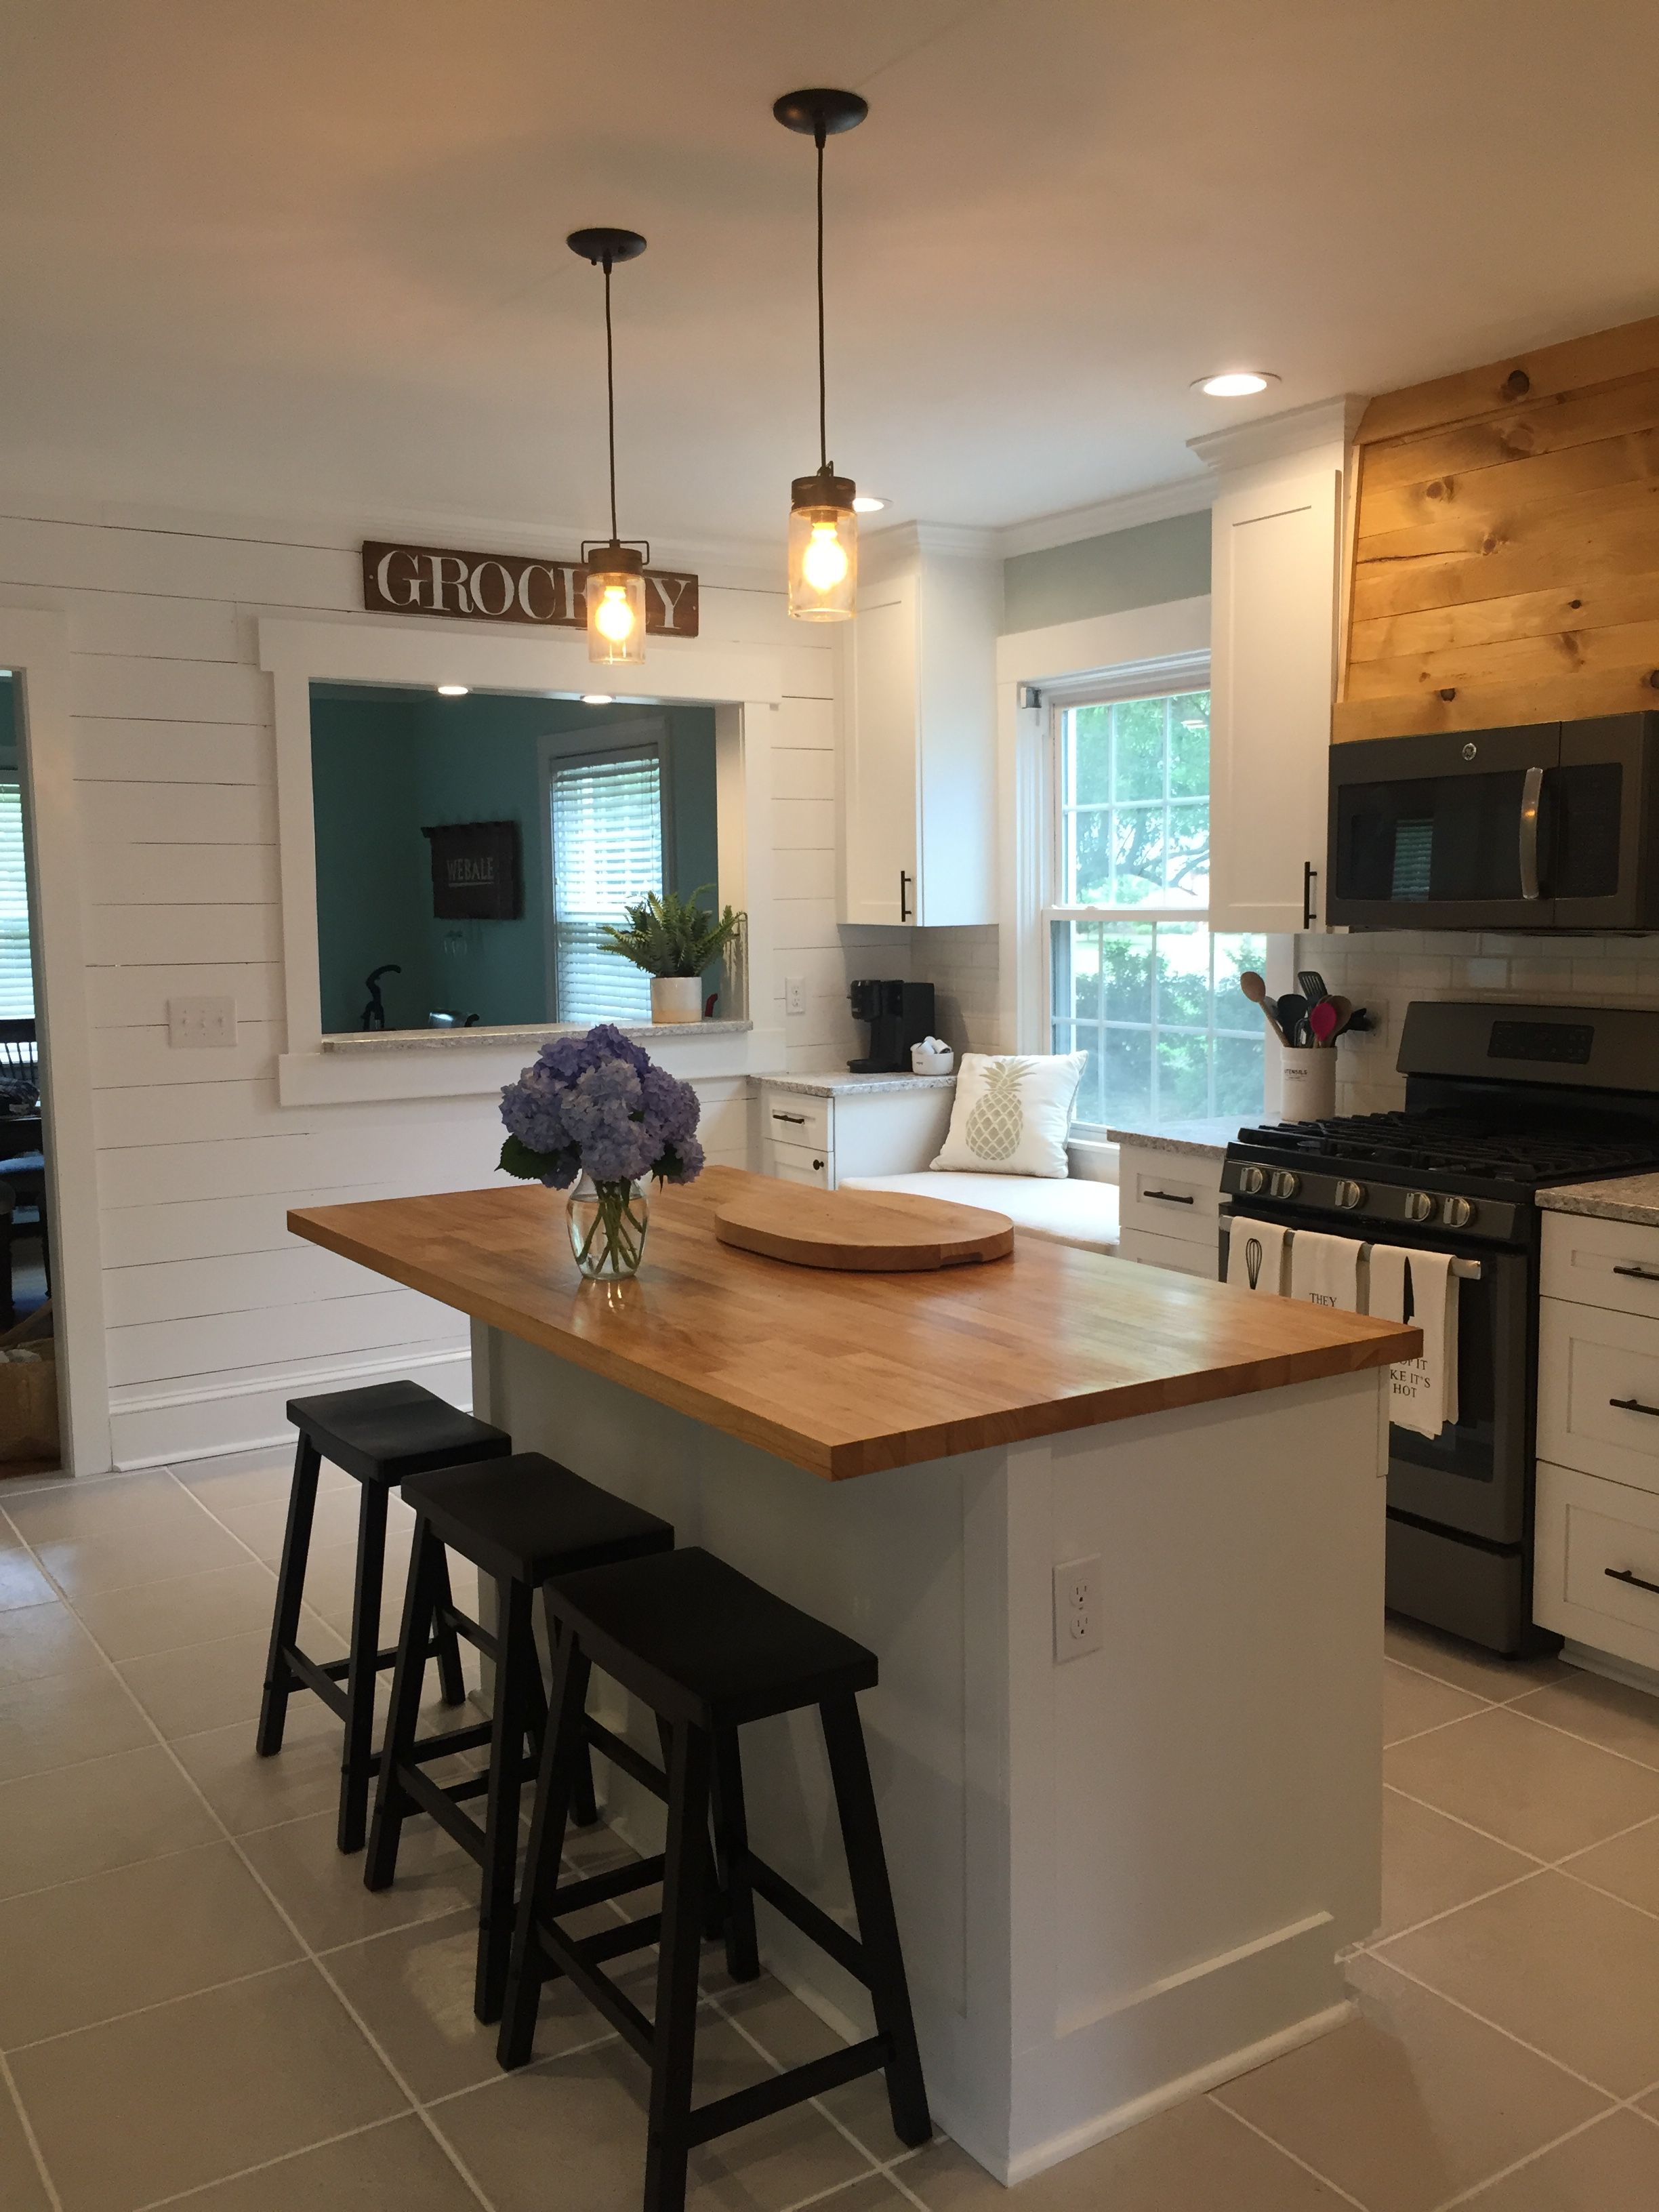 Pin by Amanda Knight on Our Fixer upper